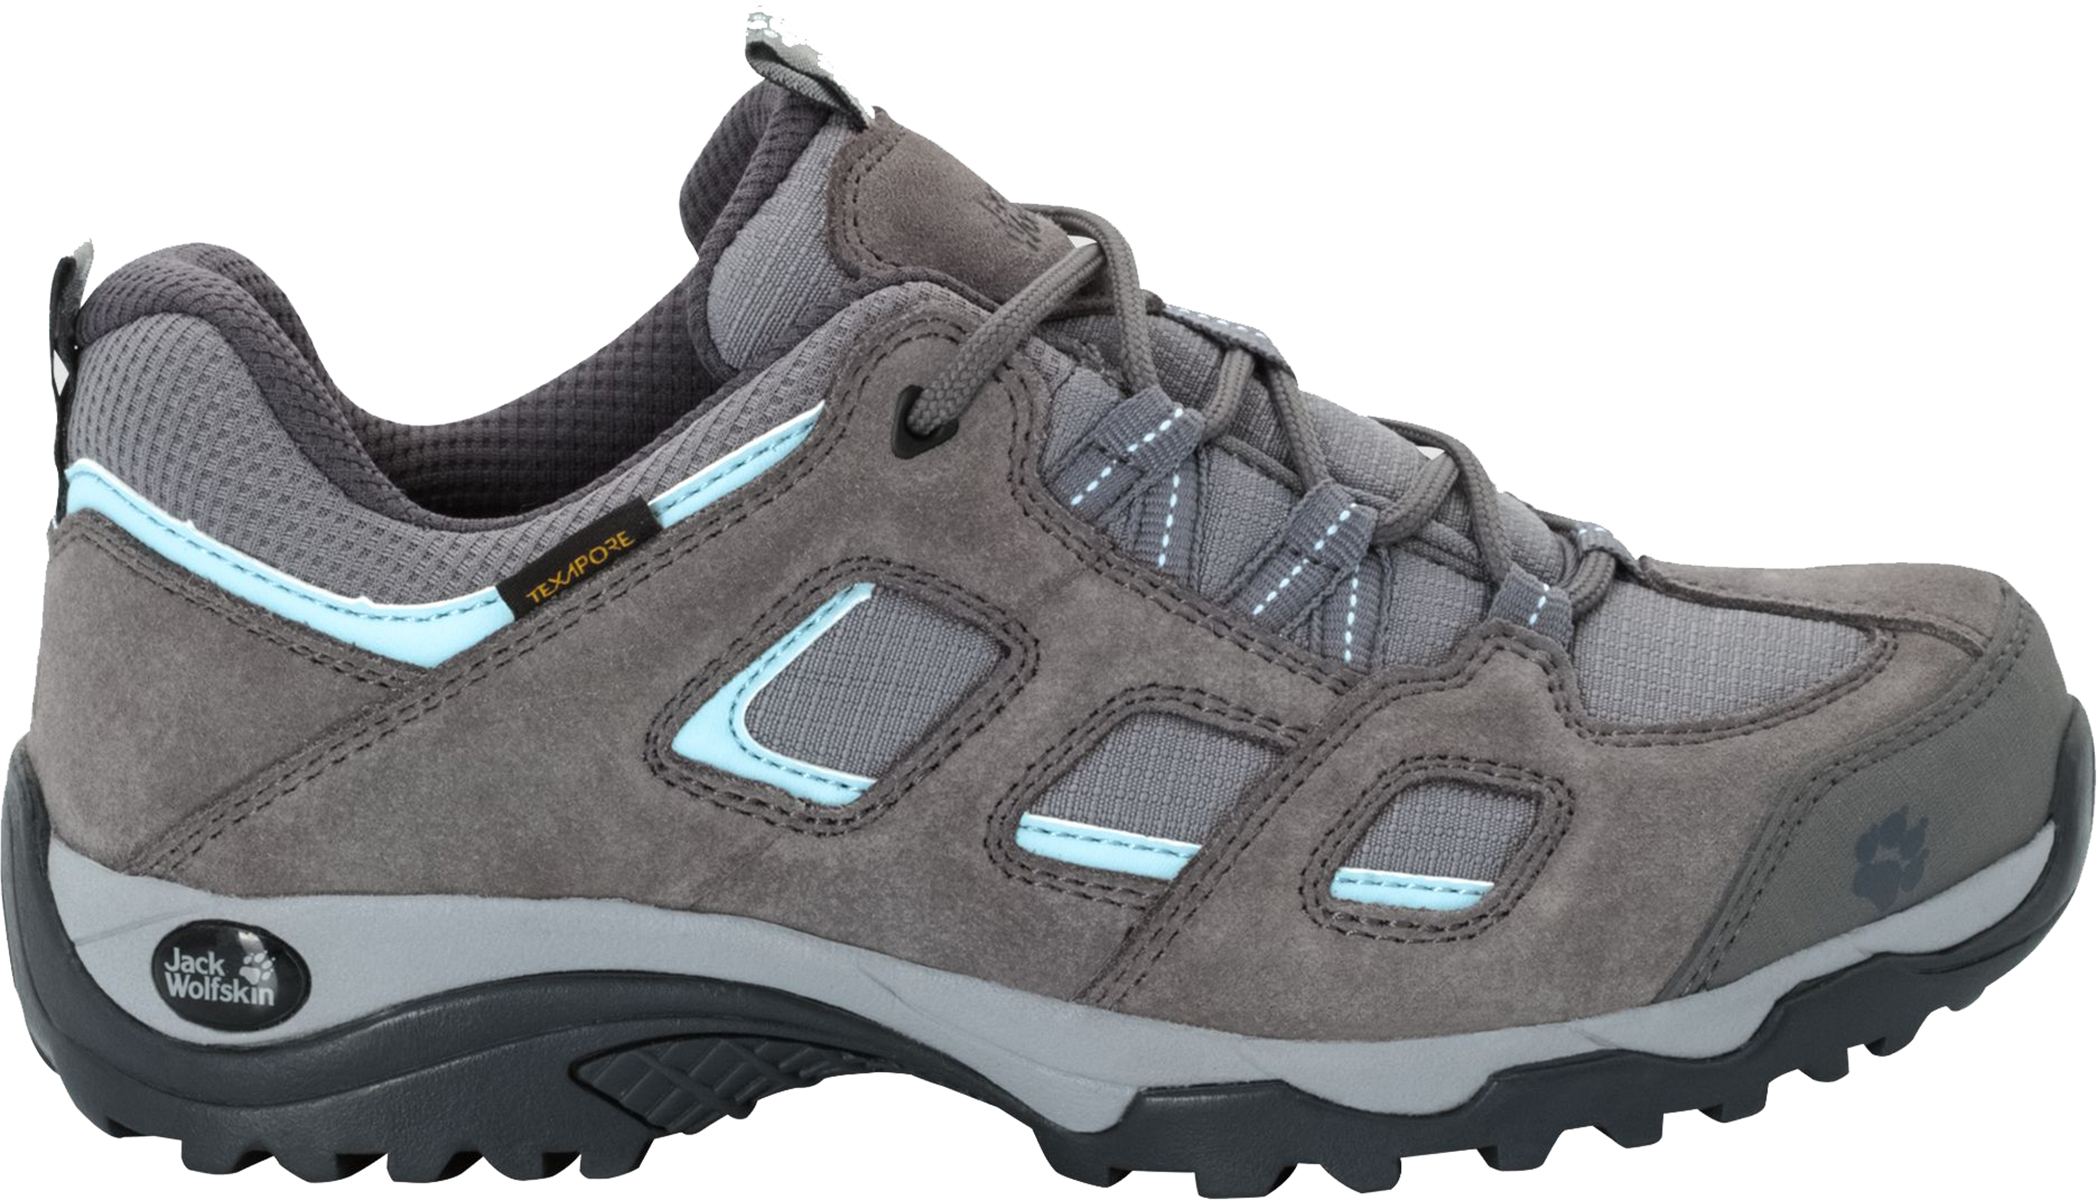 Jack Wolfskin Women's Vojo Hike 2 Texapore Low Shoes